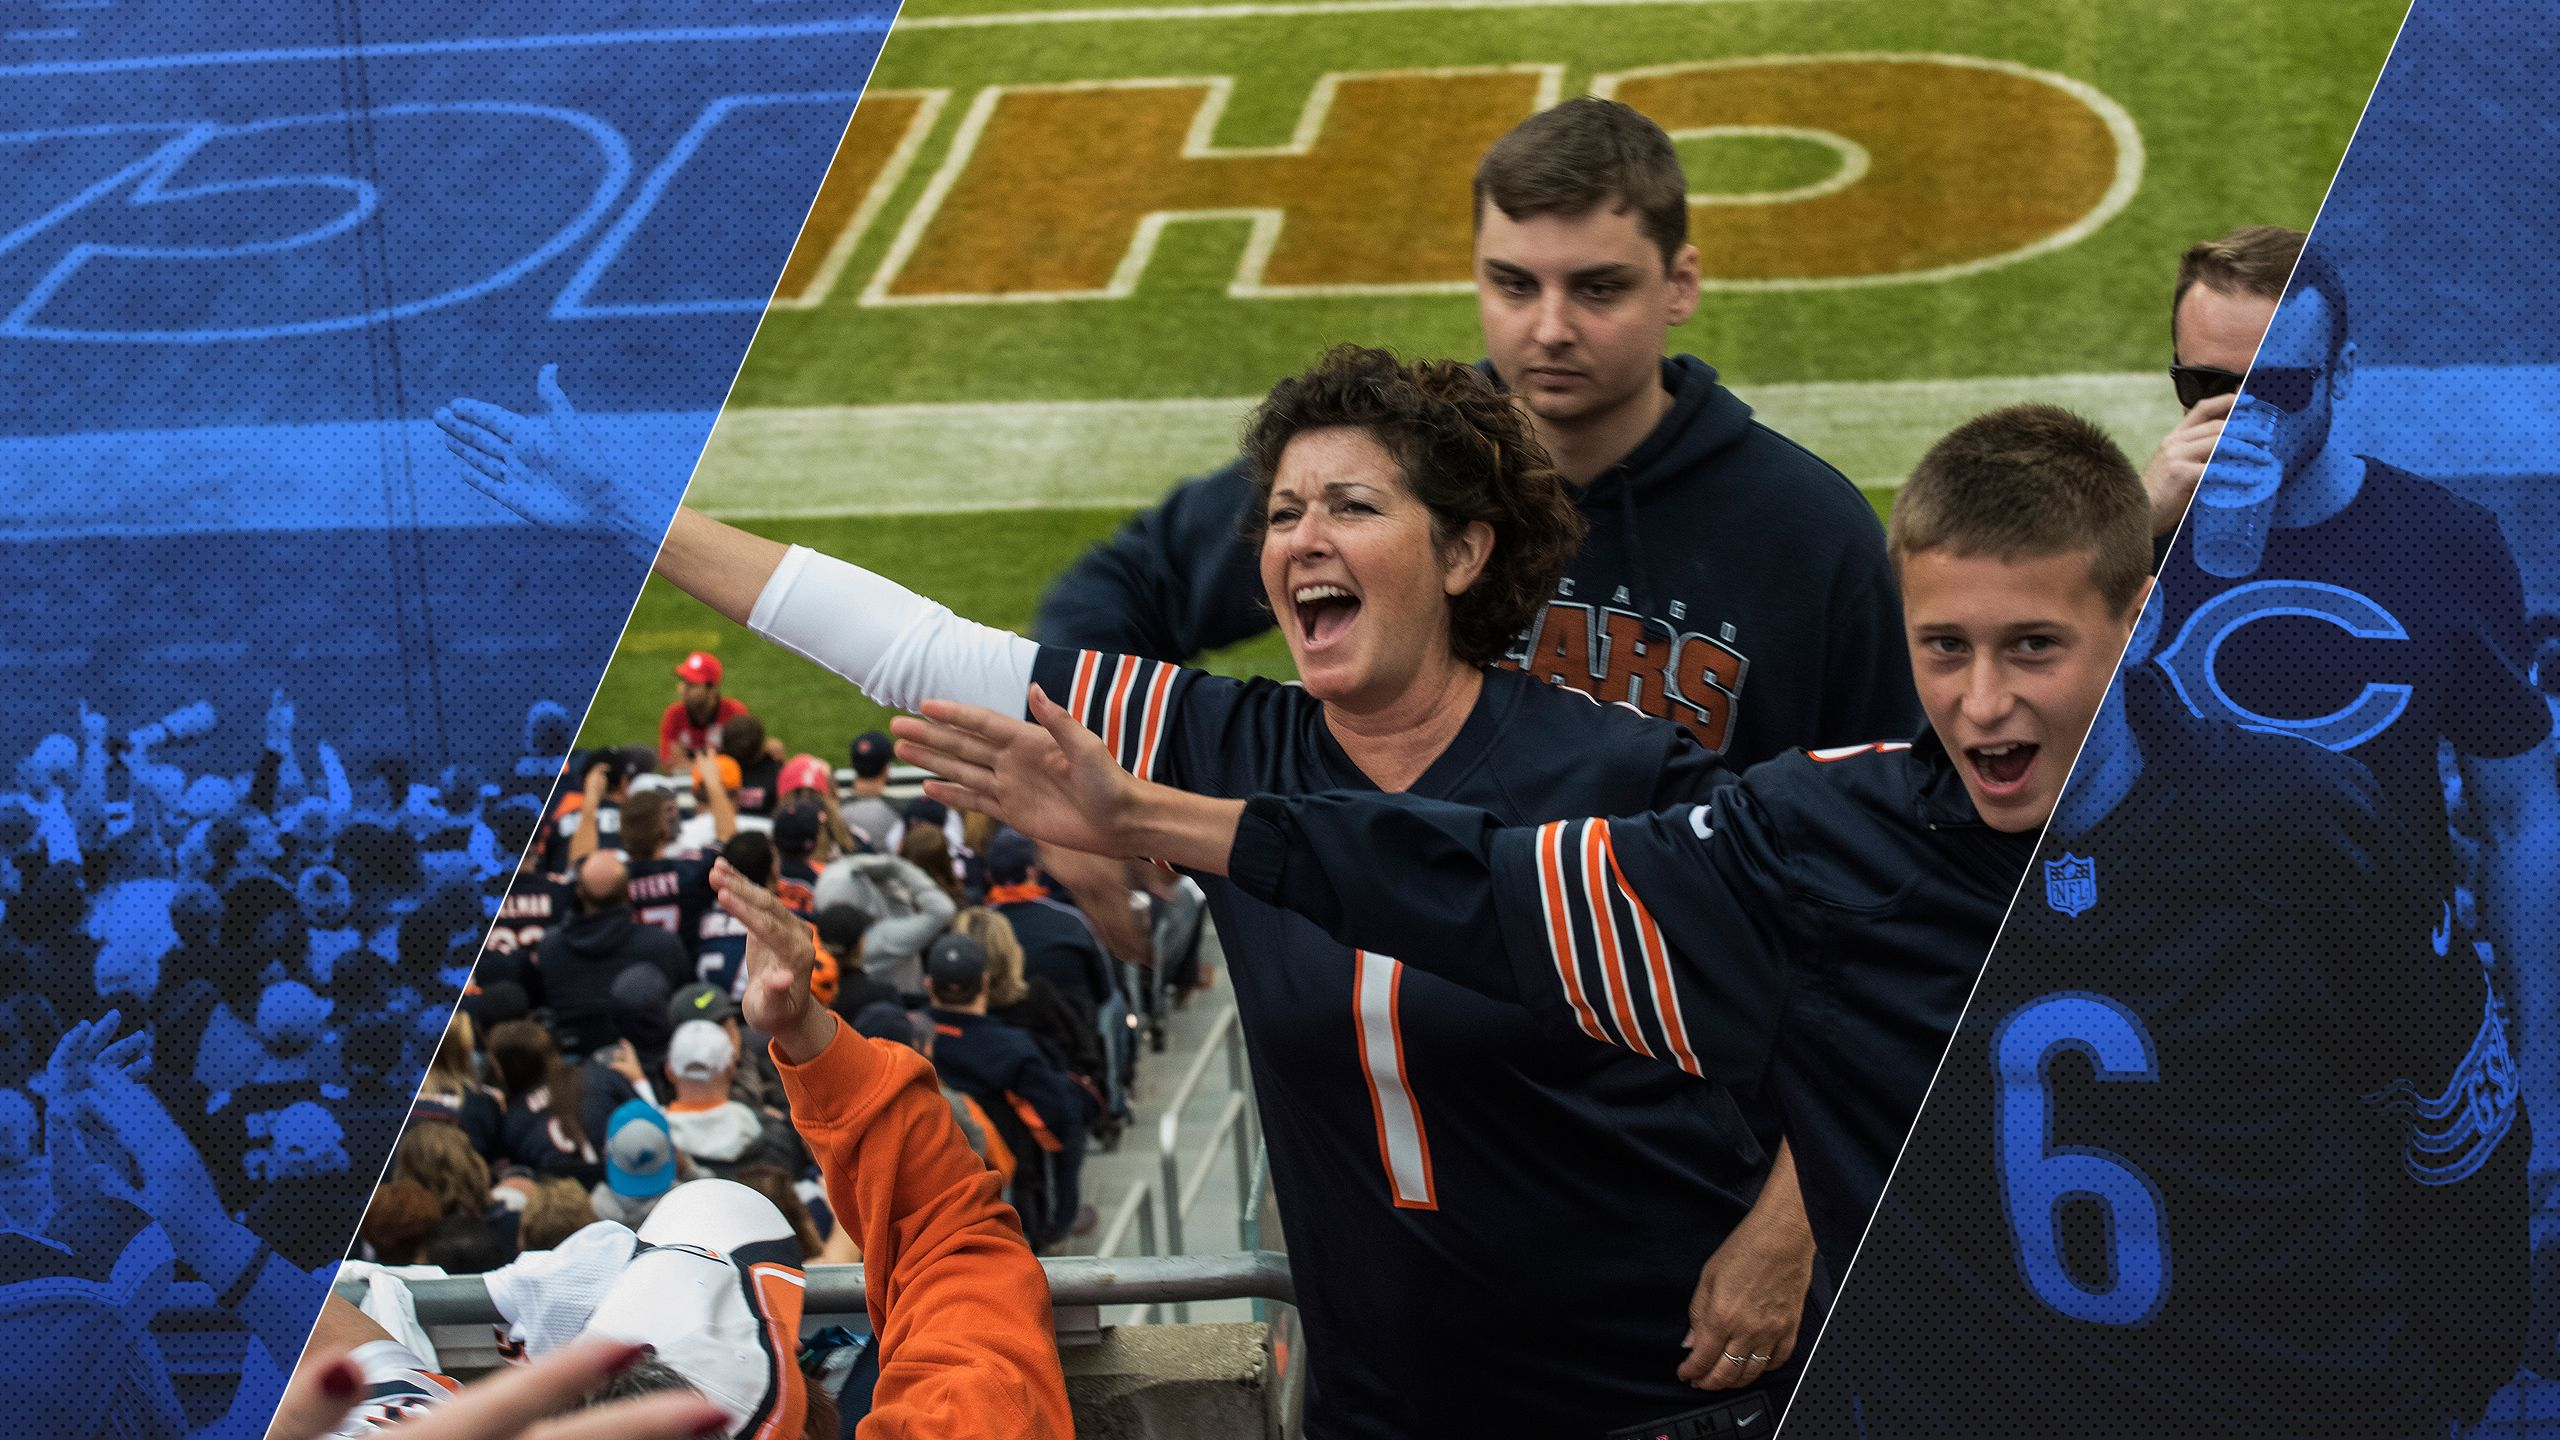 We the Fans: Section 250 of Soldier Field